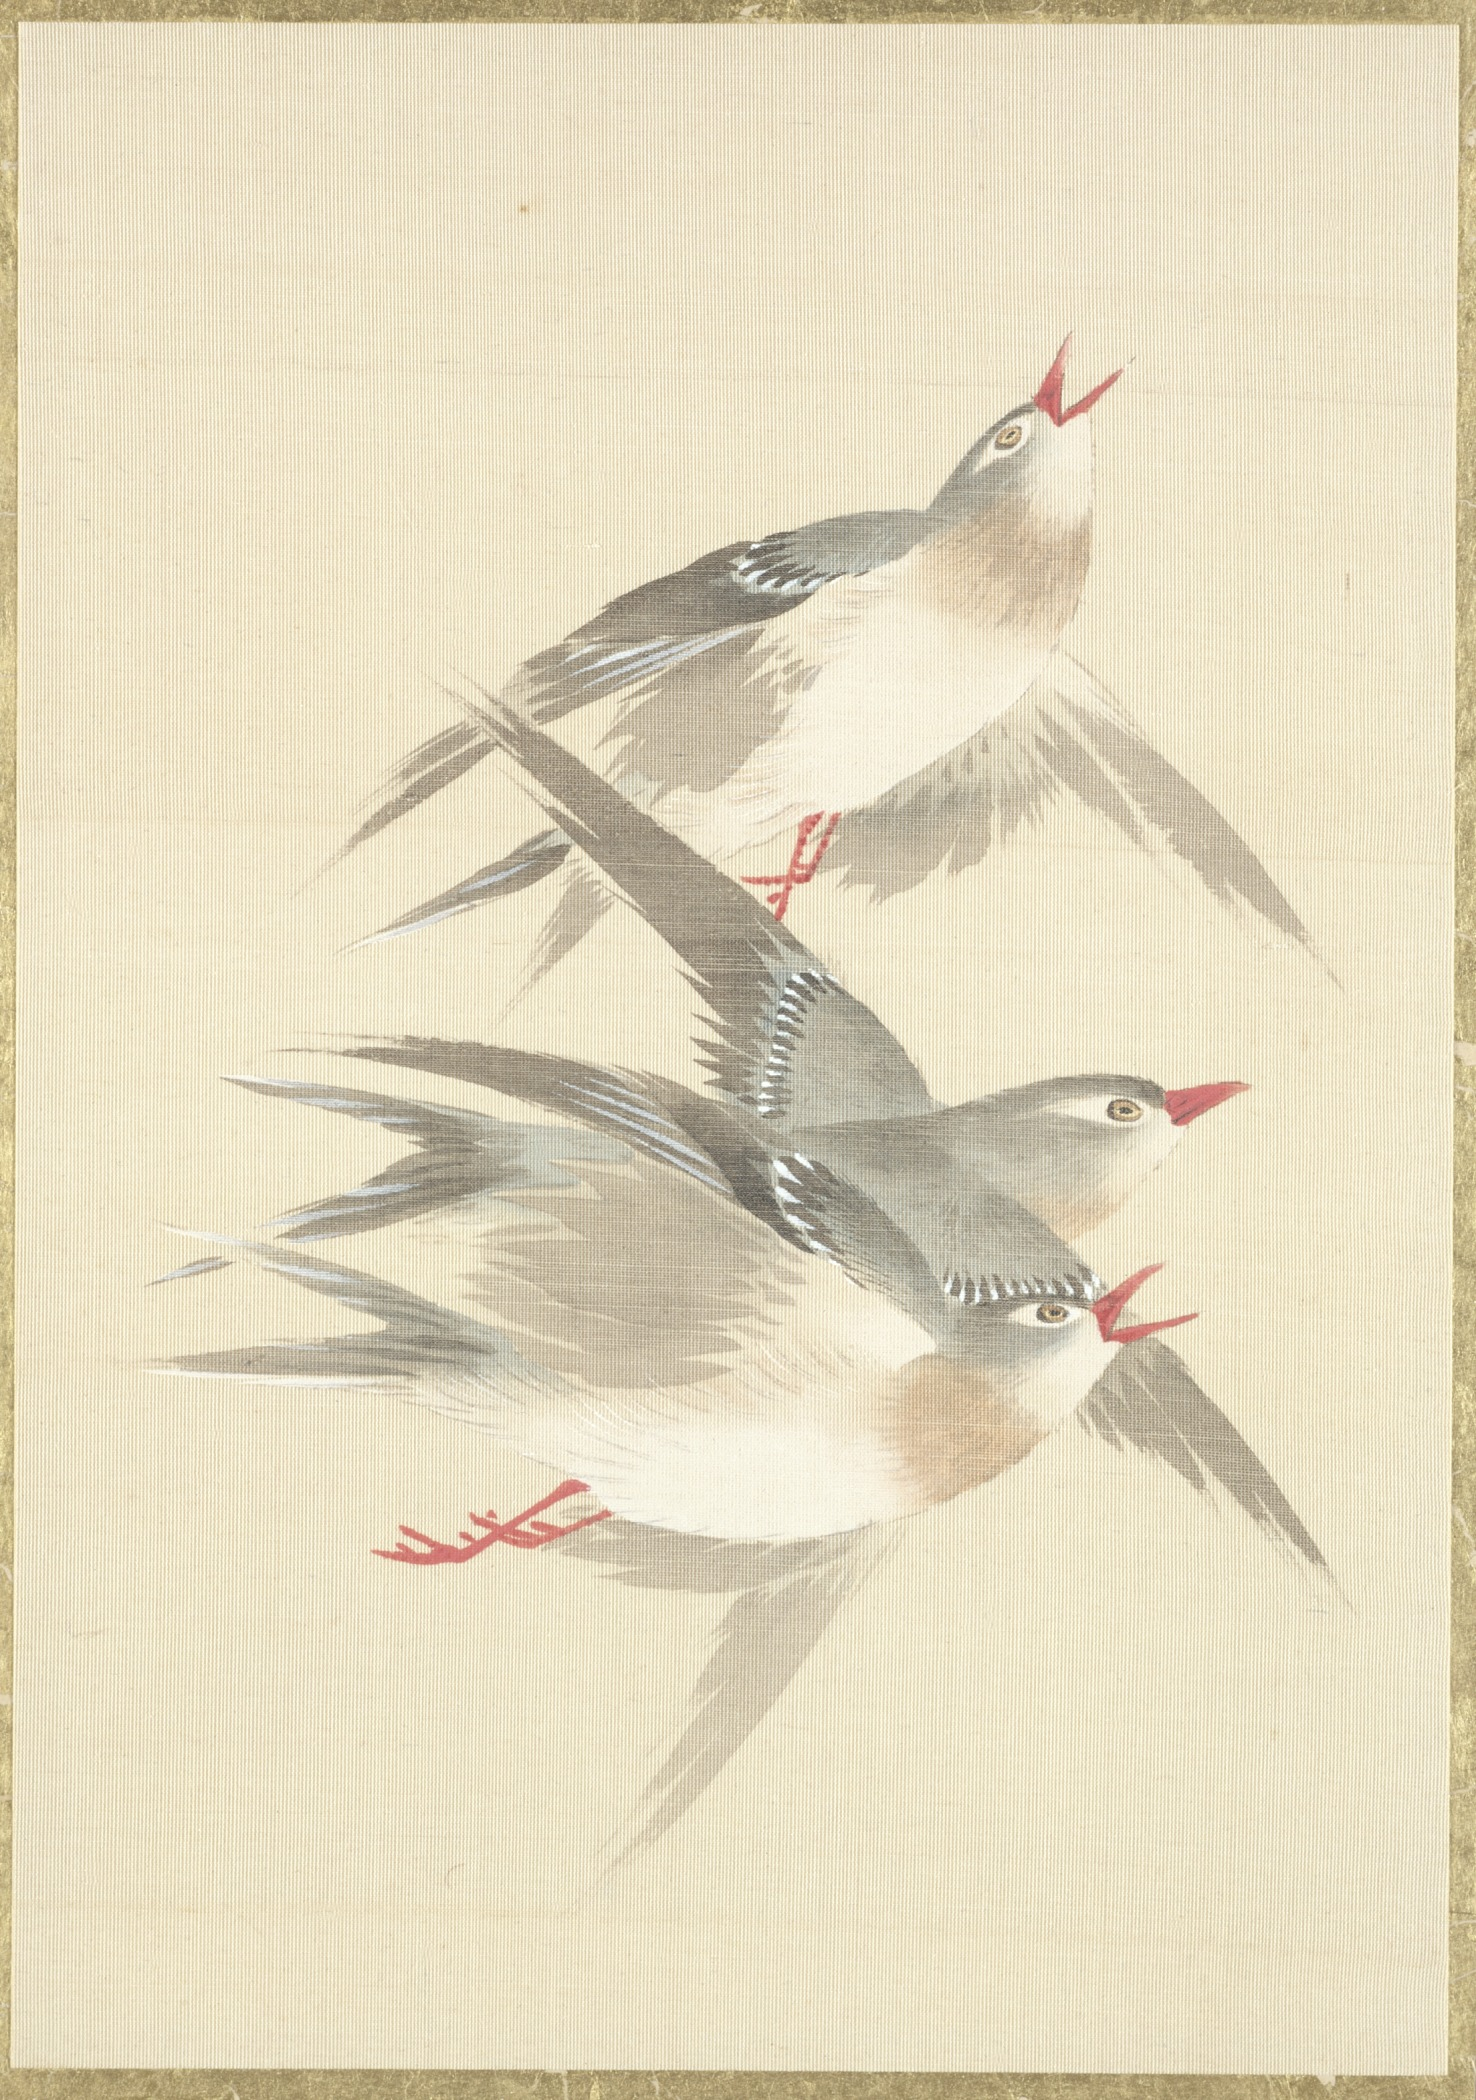 https://upload.wikimedia.org/wikipedia/commons/7/7b/Pictures_of_Flowers_and_Birds_LACMA_M.85.99_%2817_of_25%29.jpg